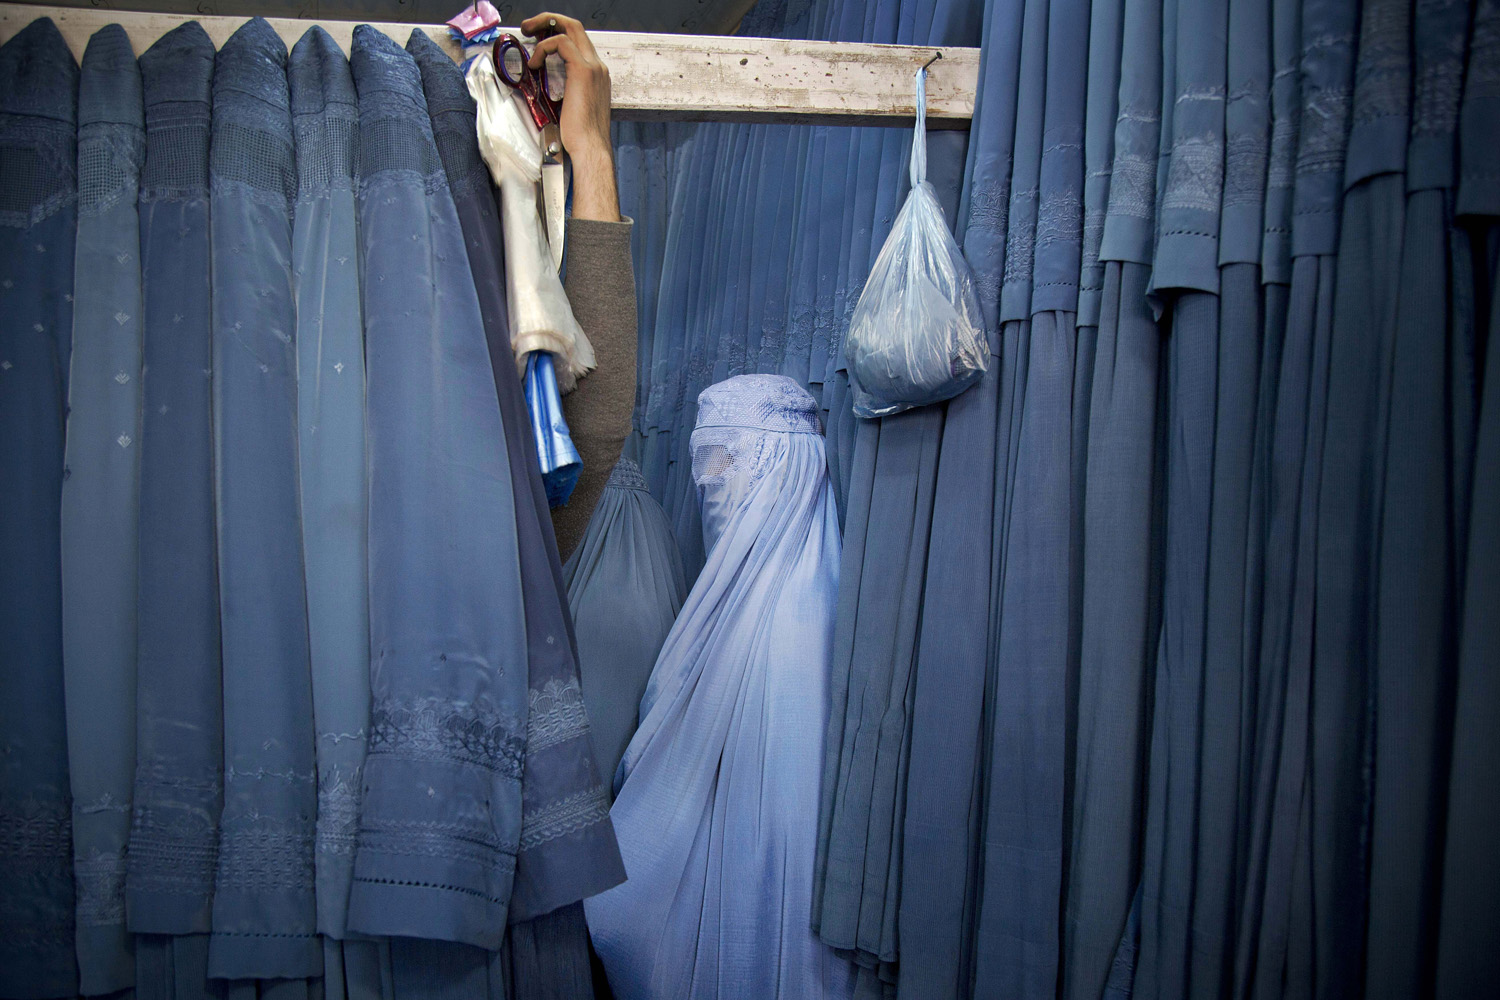 April 11, 2013. An Afghan woman waits in a changing room to try out a new Burqa, in a shop at in the old city of Kabul, Afghanistan.